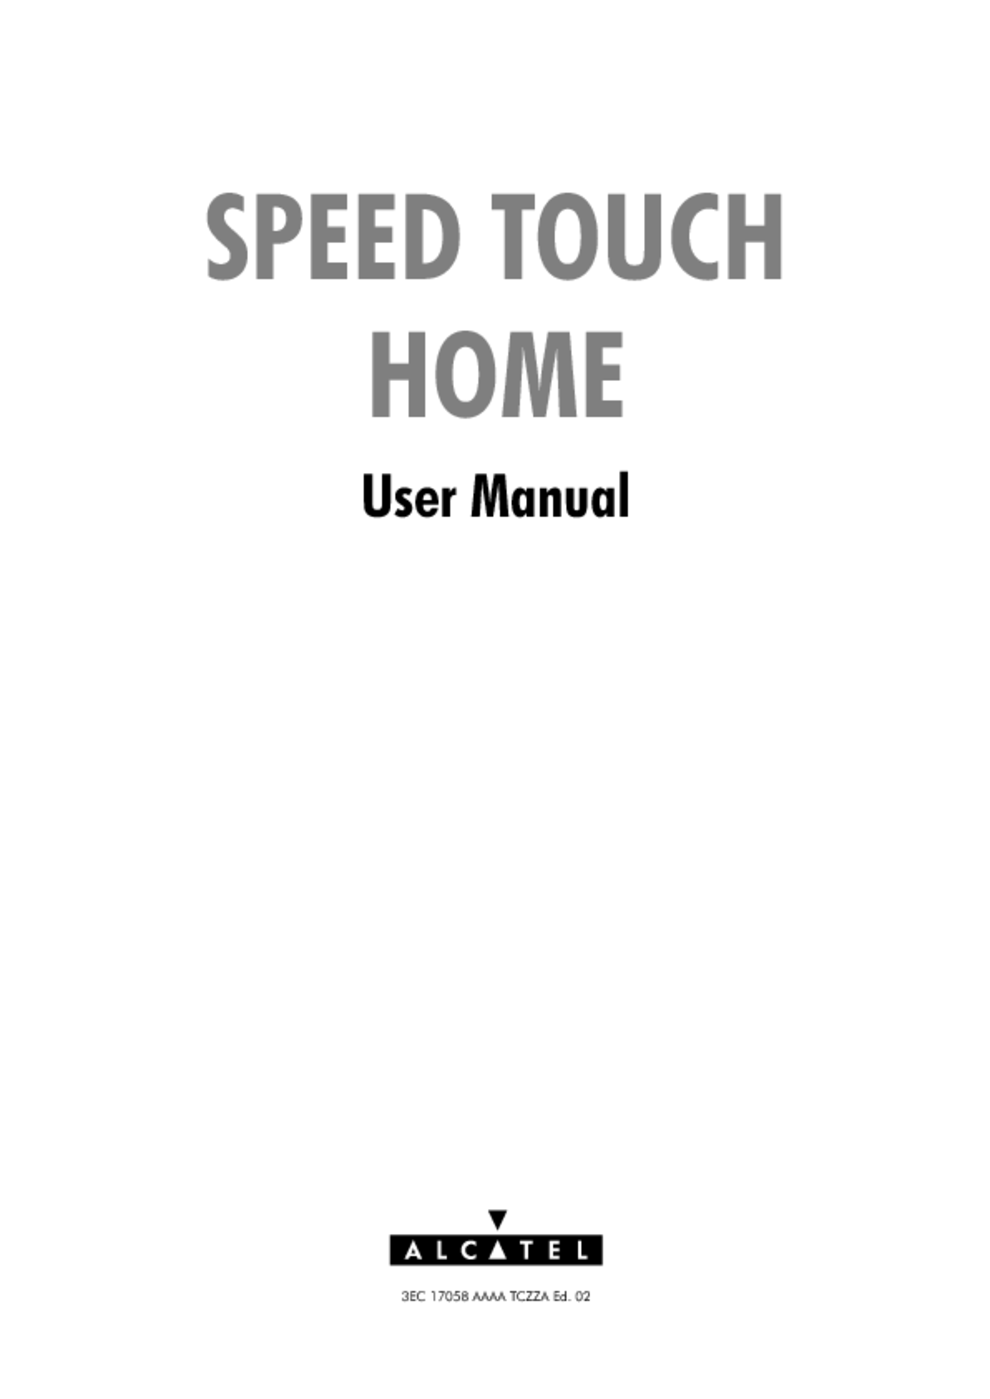 SpeedTouch Speed Touch Home Asymmetric Digital Subscriber